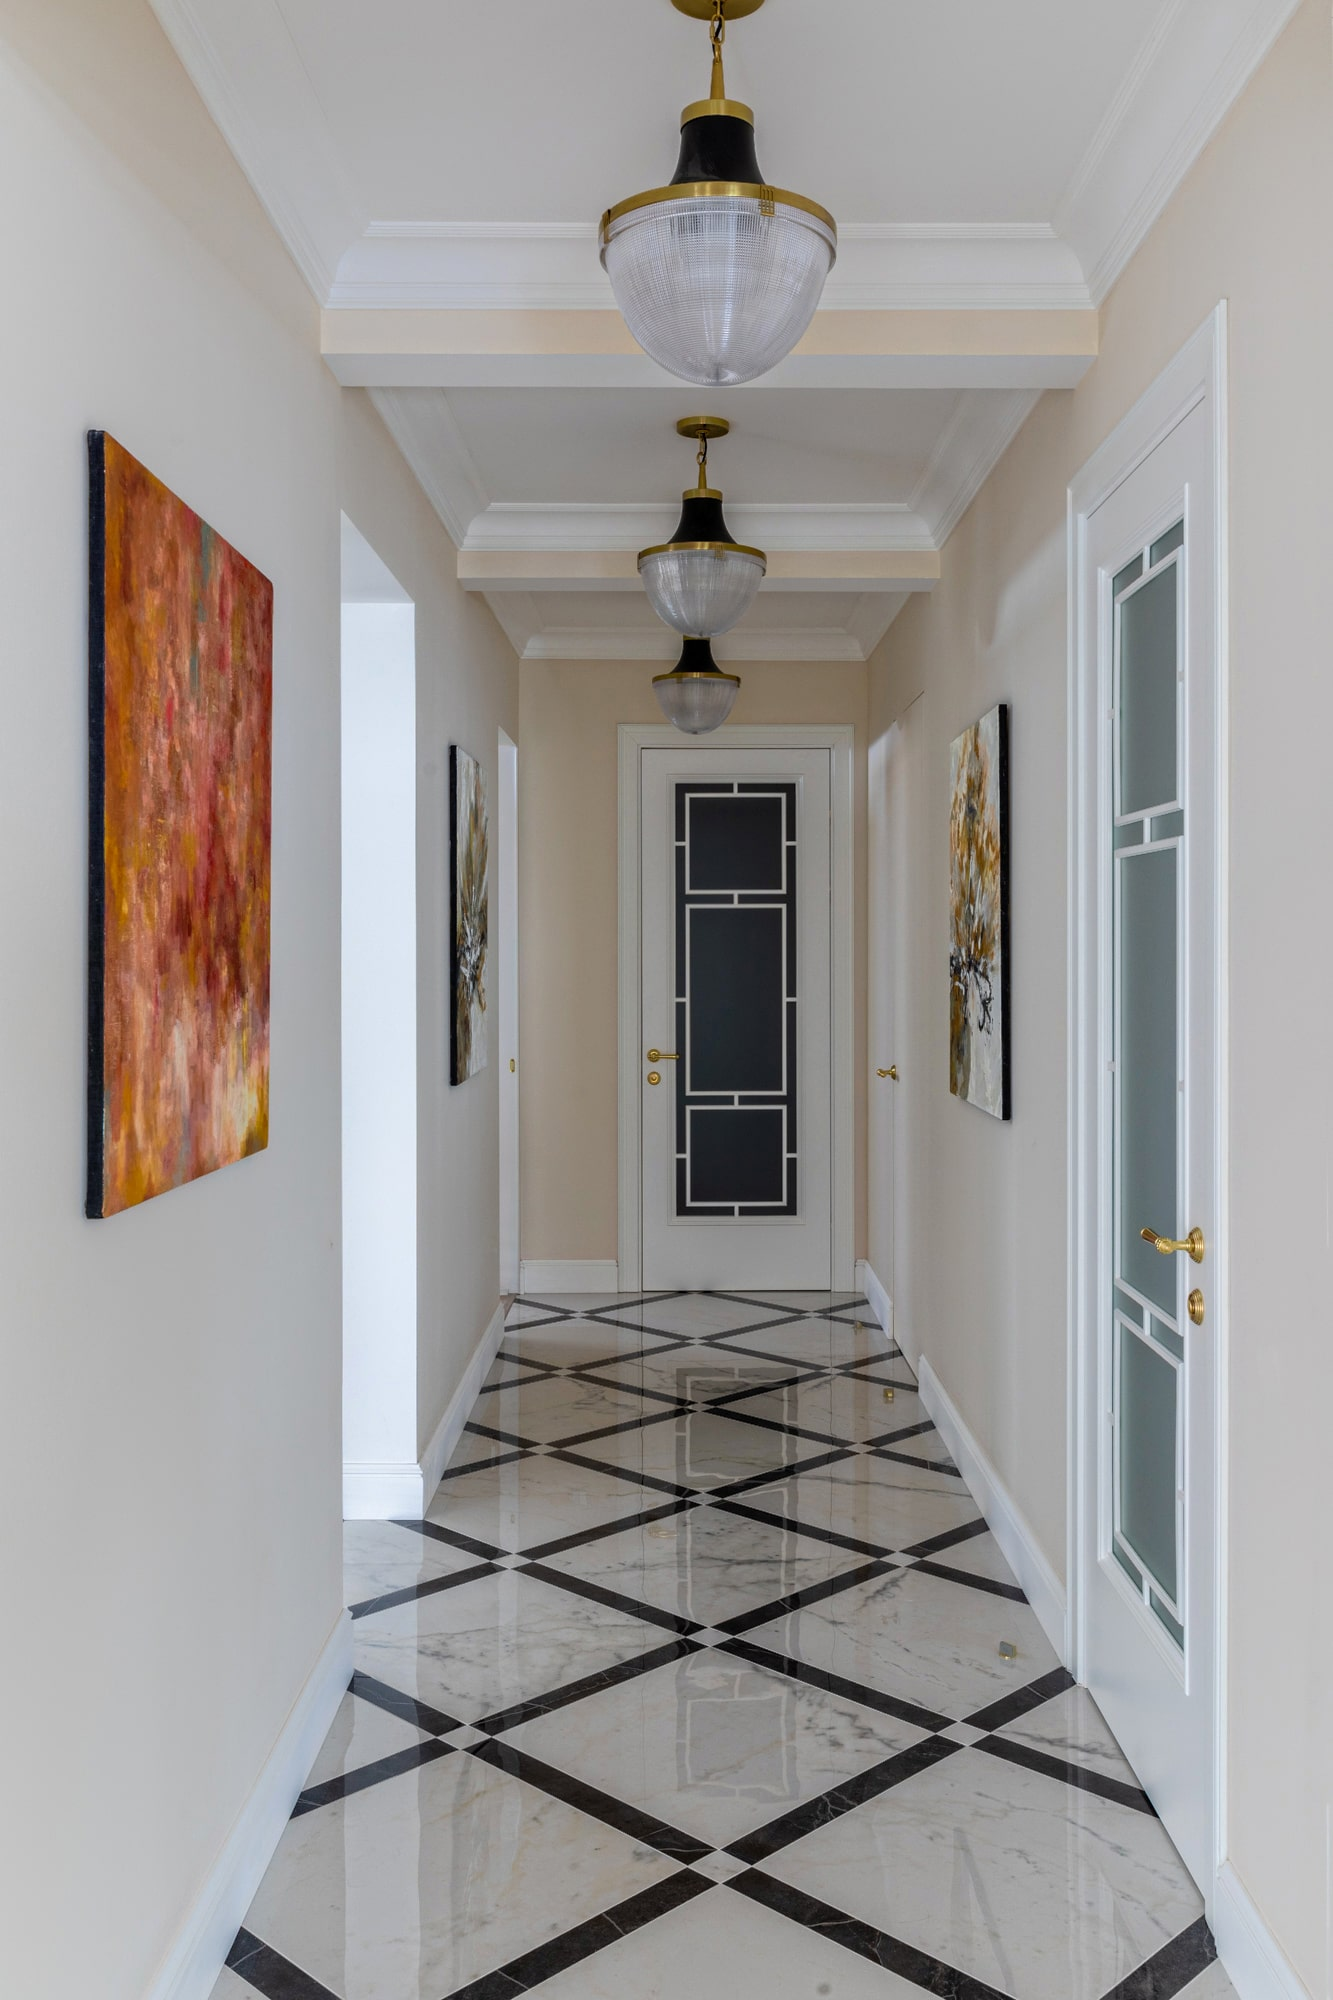 interior photo: hallway with marble tiles and a lot of art